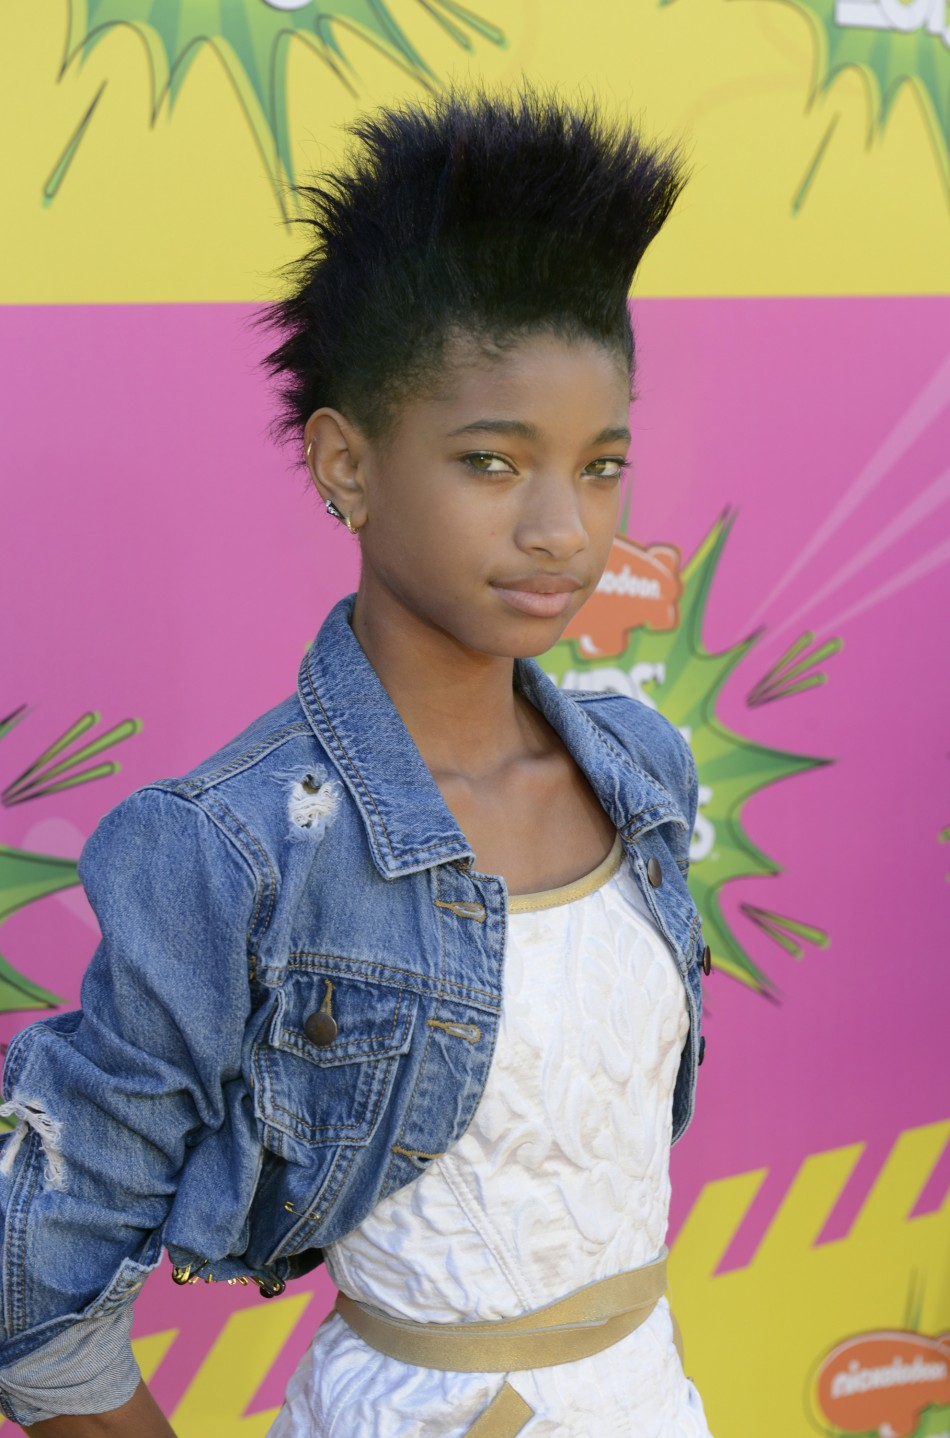 Willow Smith attends the 2013 Kids Choice Awards